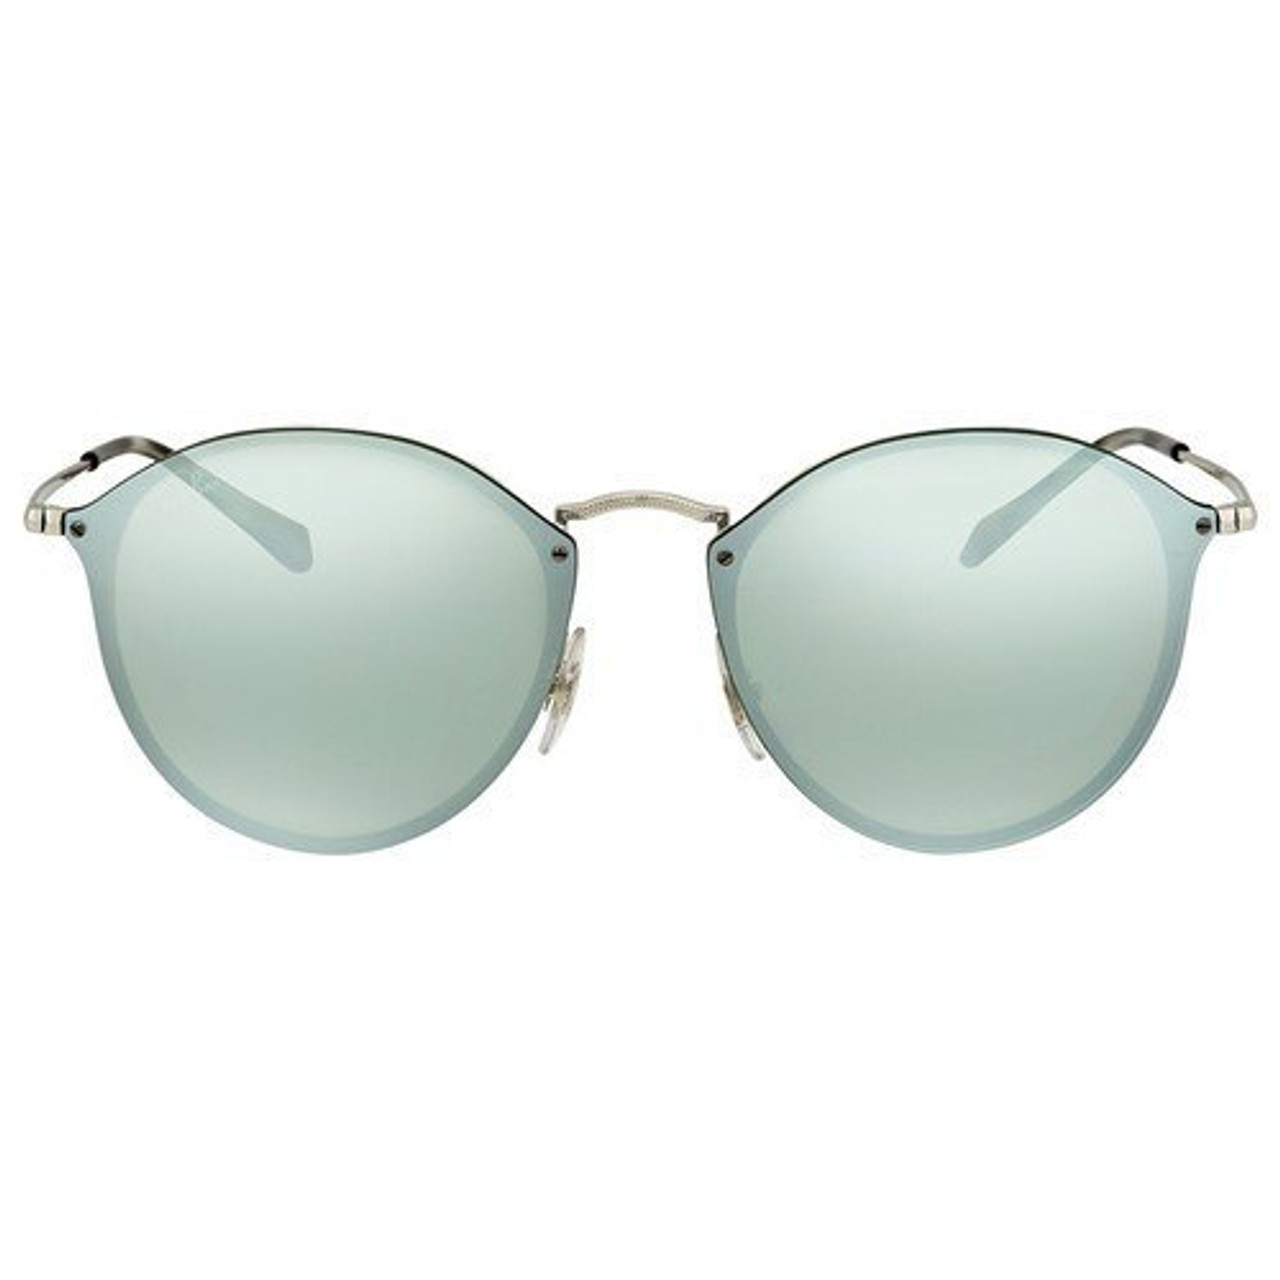 d9715b51d3e Ray-Ban Blaze Round Sunglasses In Silver Dark Green Mirror - CHROME